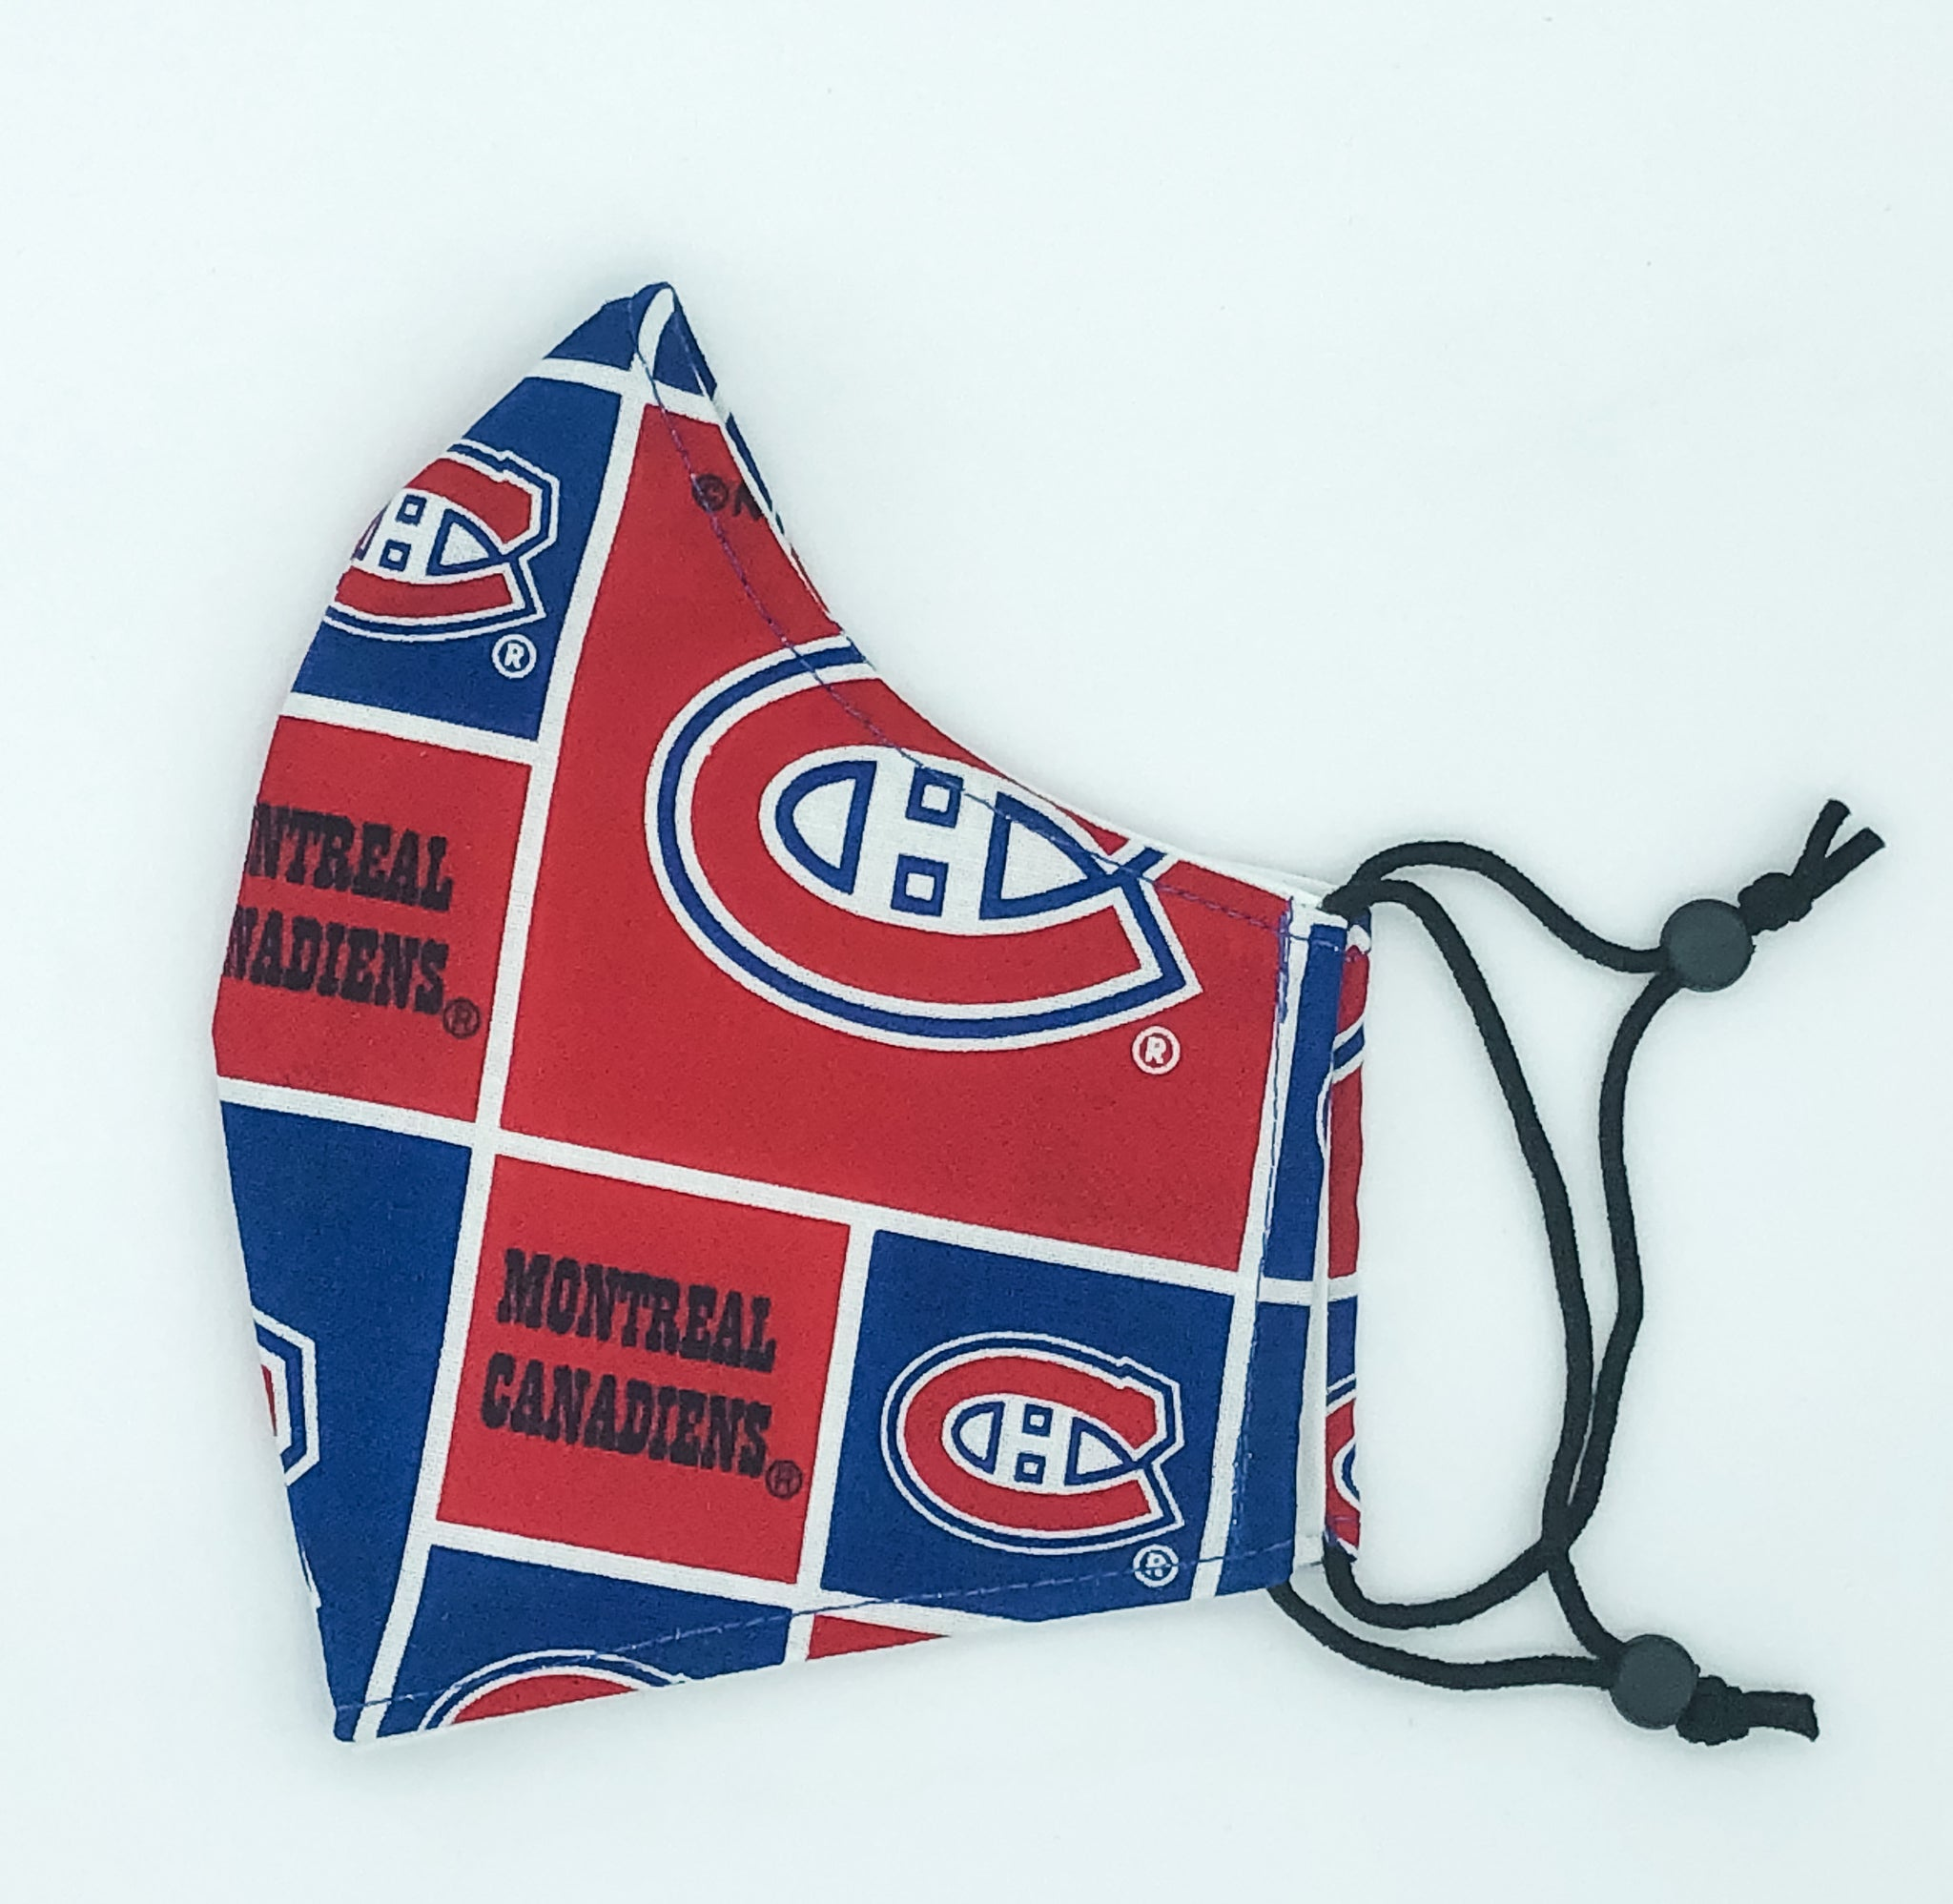 Jr. Canadians - Montreal Canadiens Logo